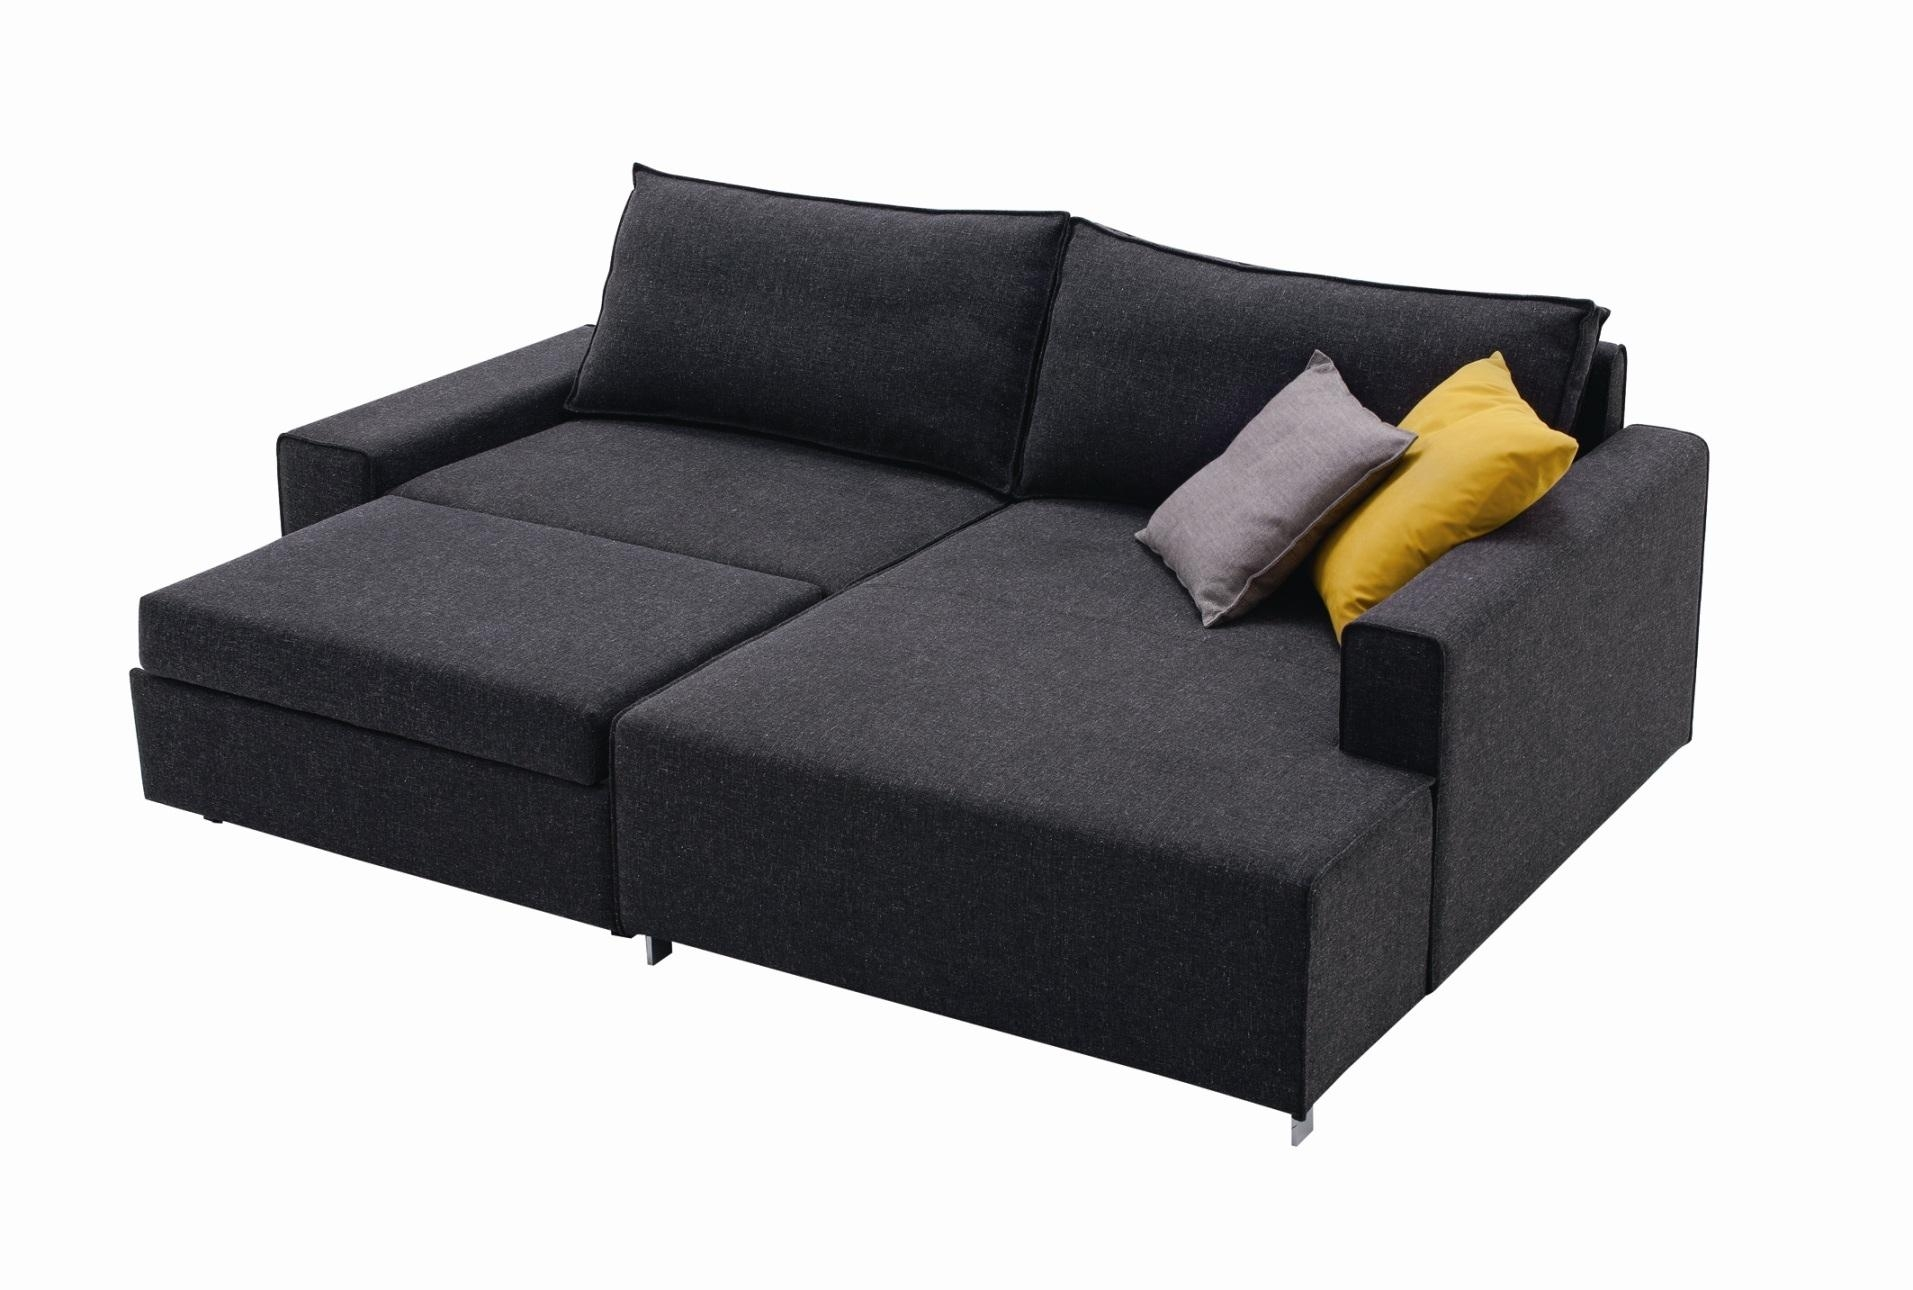 Sofas: Wayfair Beds | Futon Sofa Beds | Cheap Sofa Sleepers Intended For Cheap Sofa Beds (Image 20 of 20)